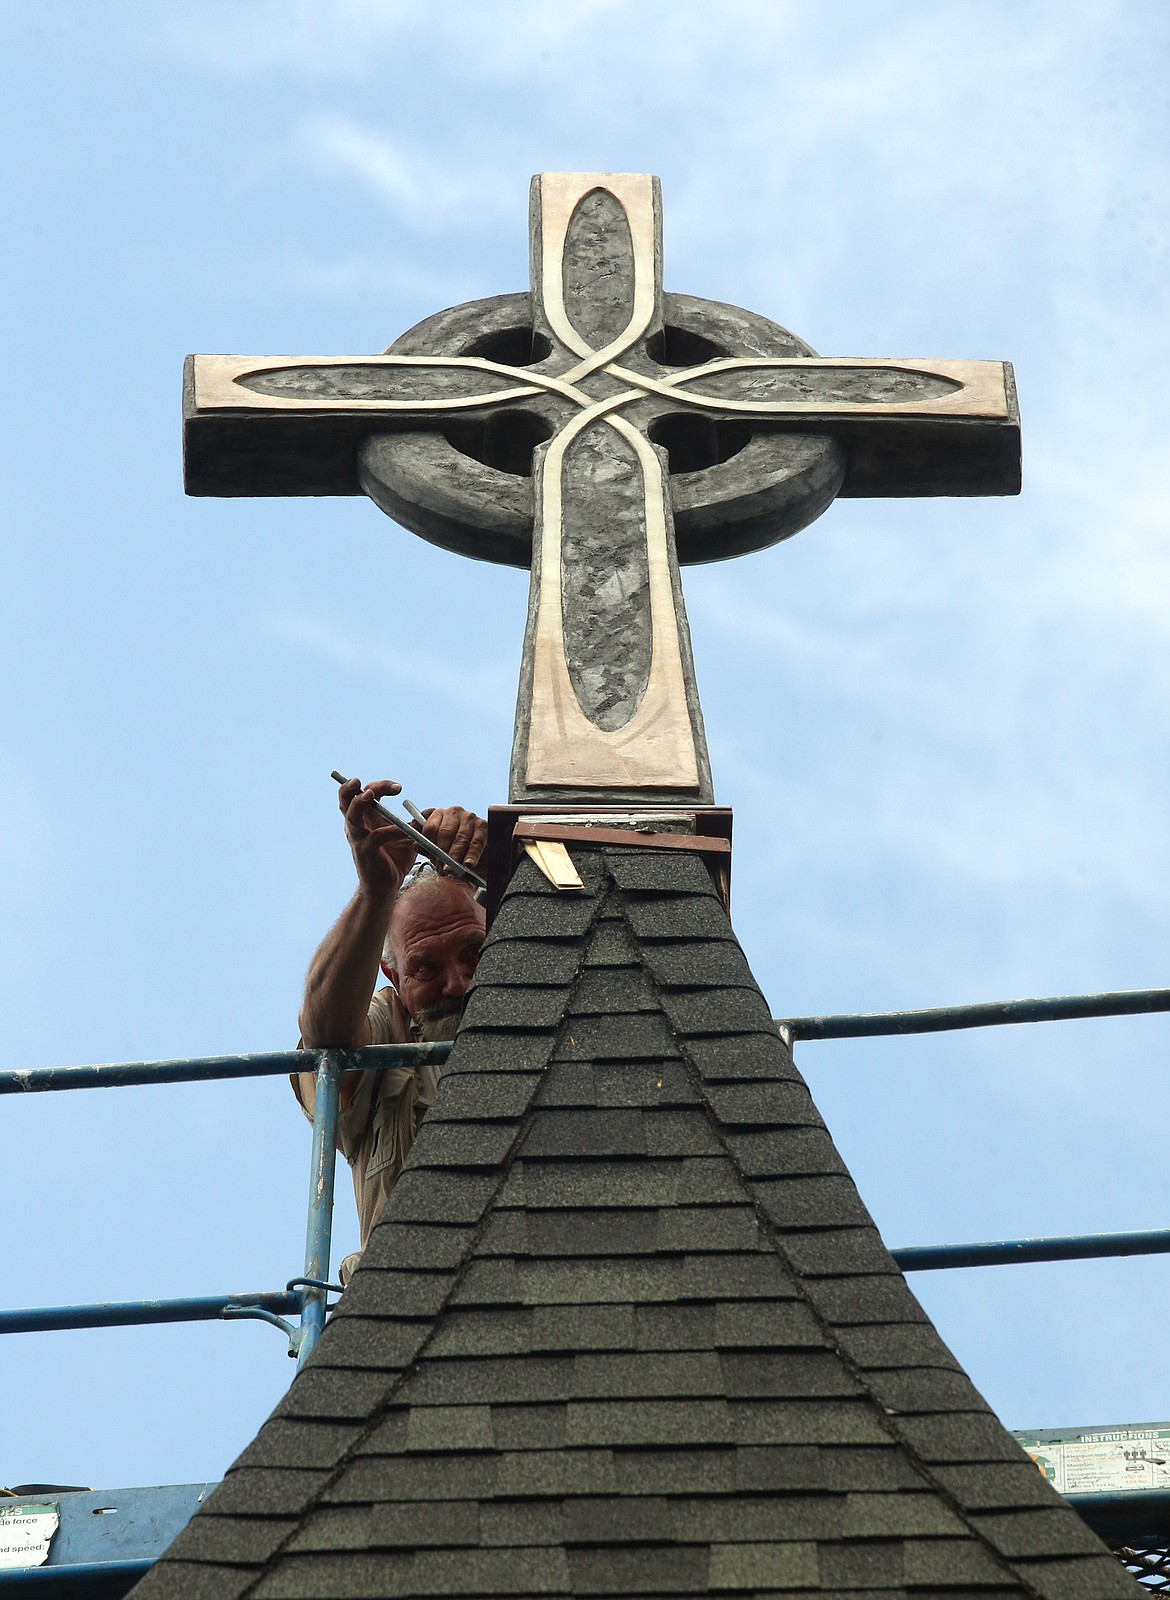 BILL BULEY/Press   David Brooks secures the new cross on the steeple at St. Luke's Episcopal Church on Thursday.